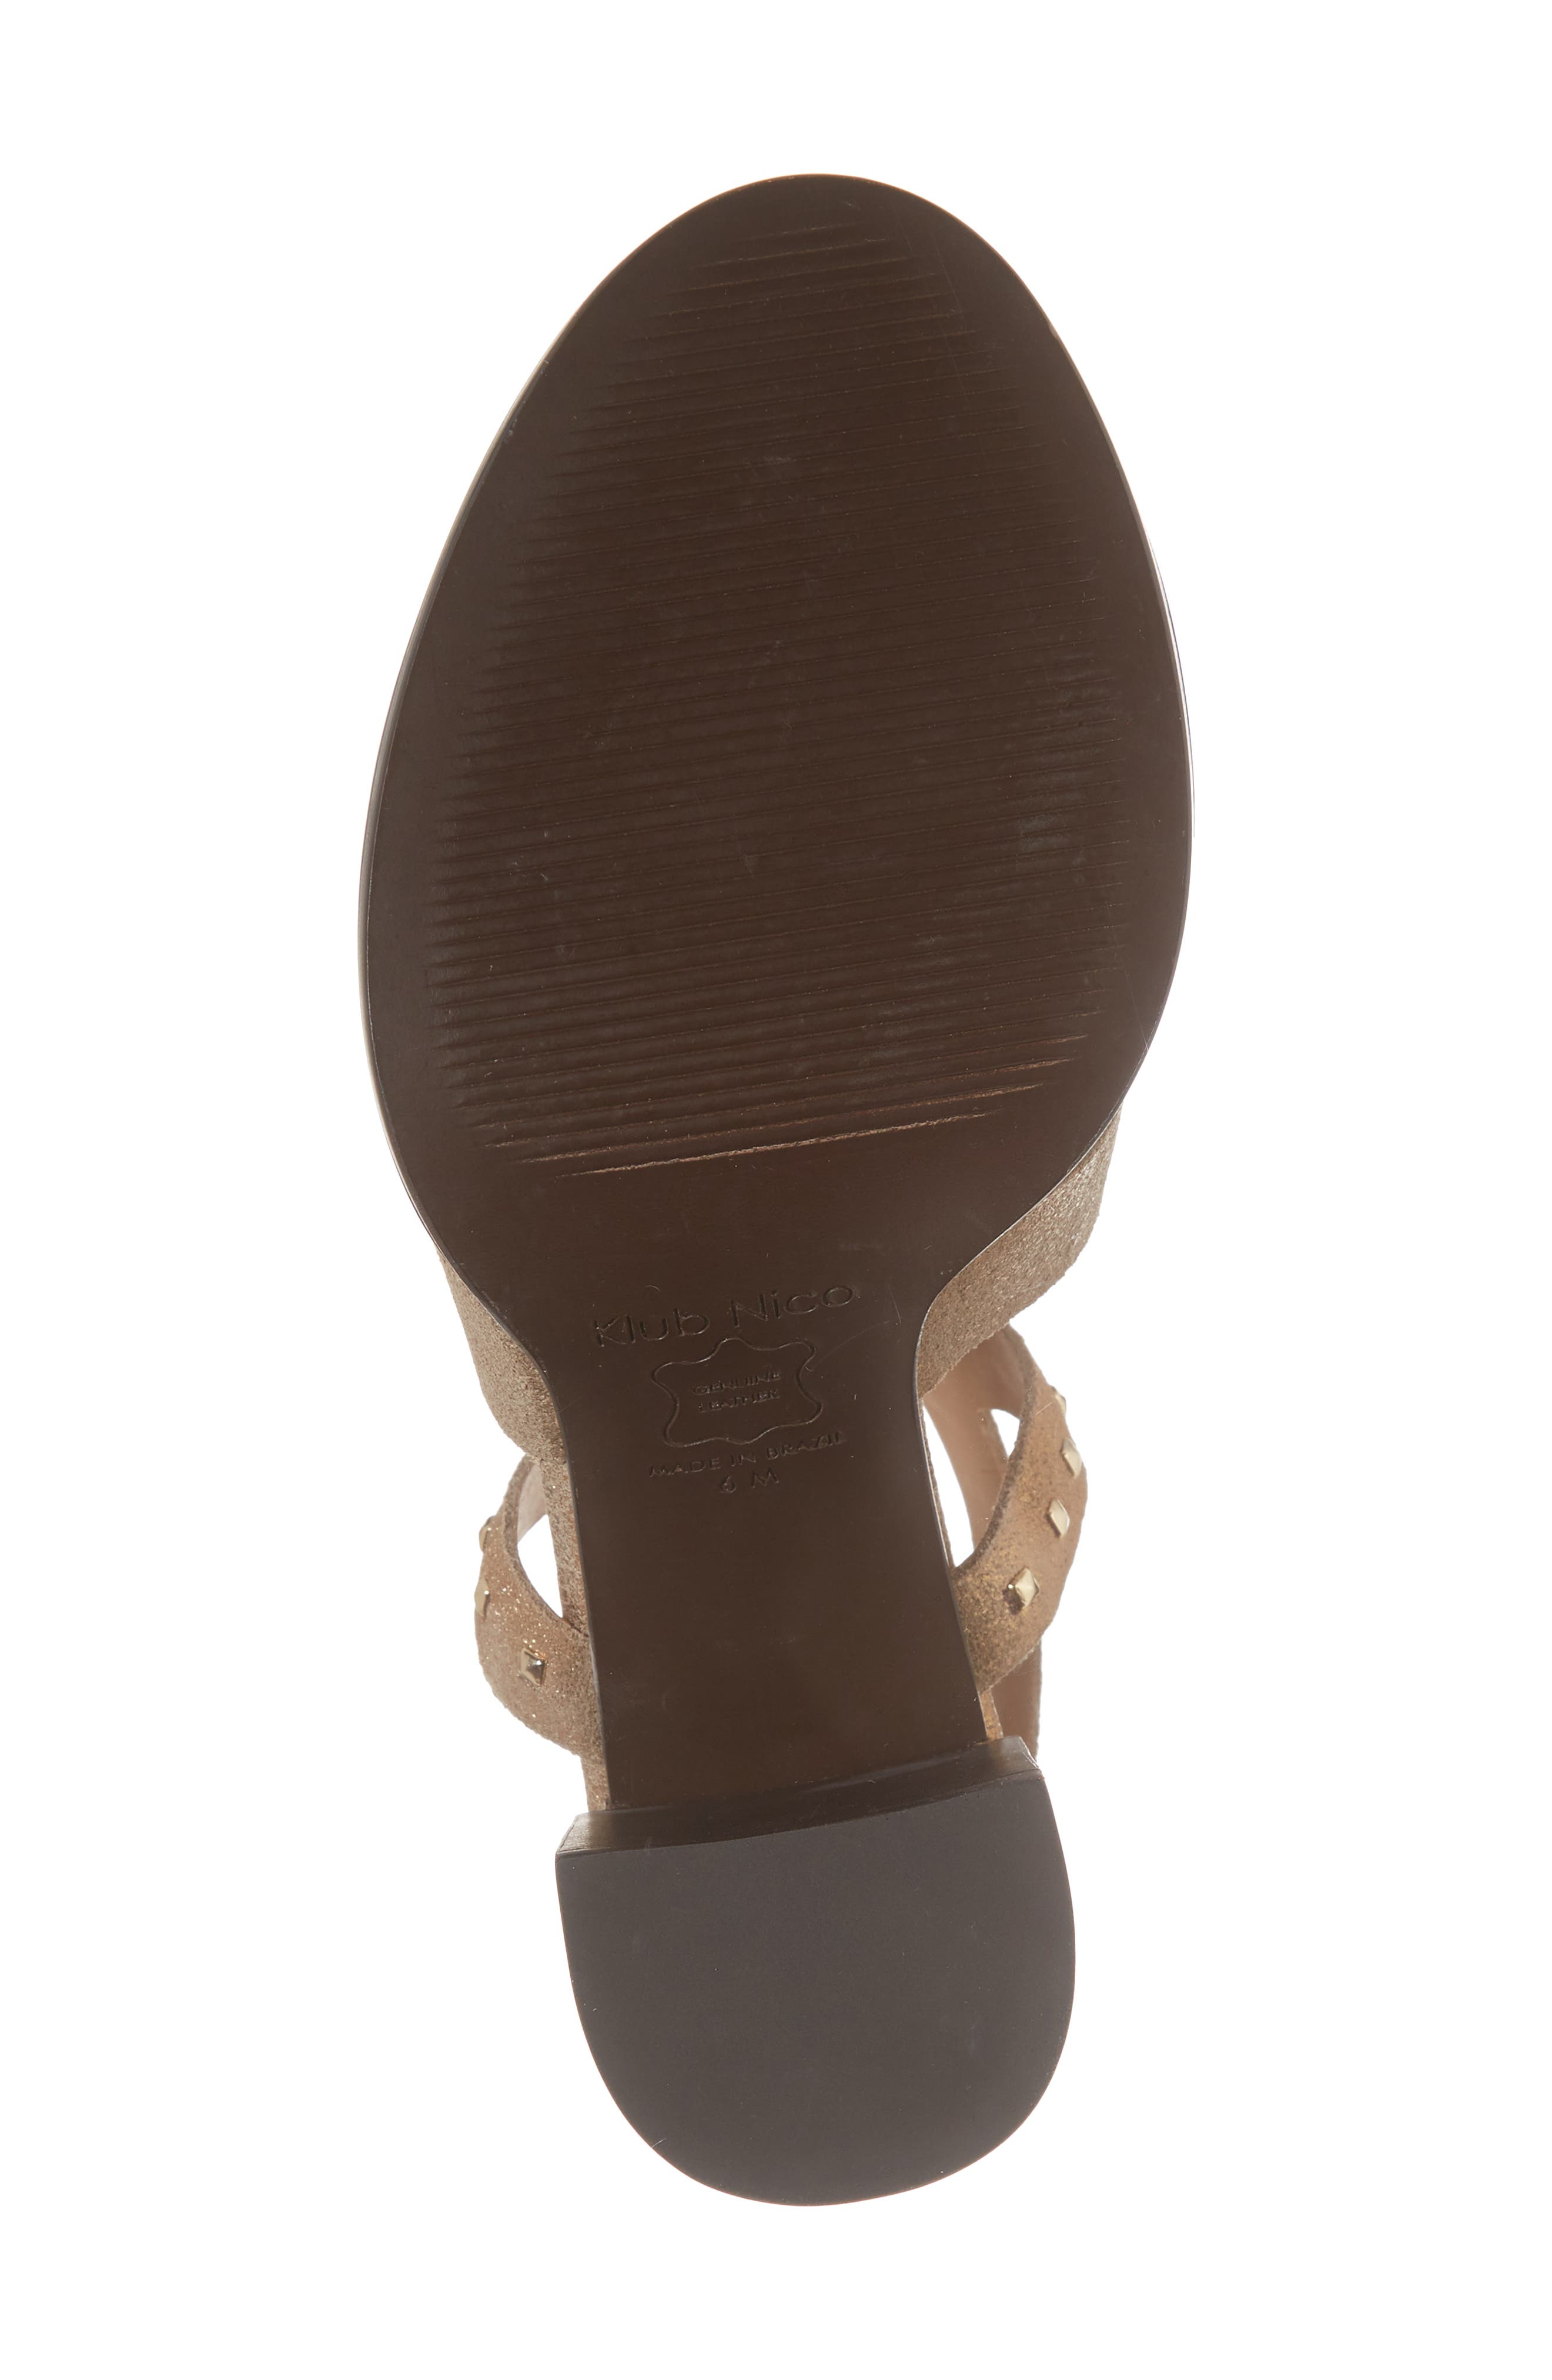 Tabia Sandal,                             Alternate thumbnail 6, color,                             Bronze Suede